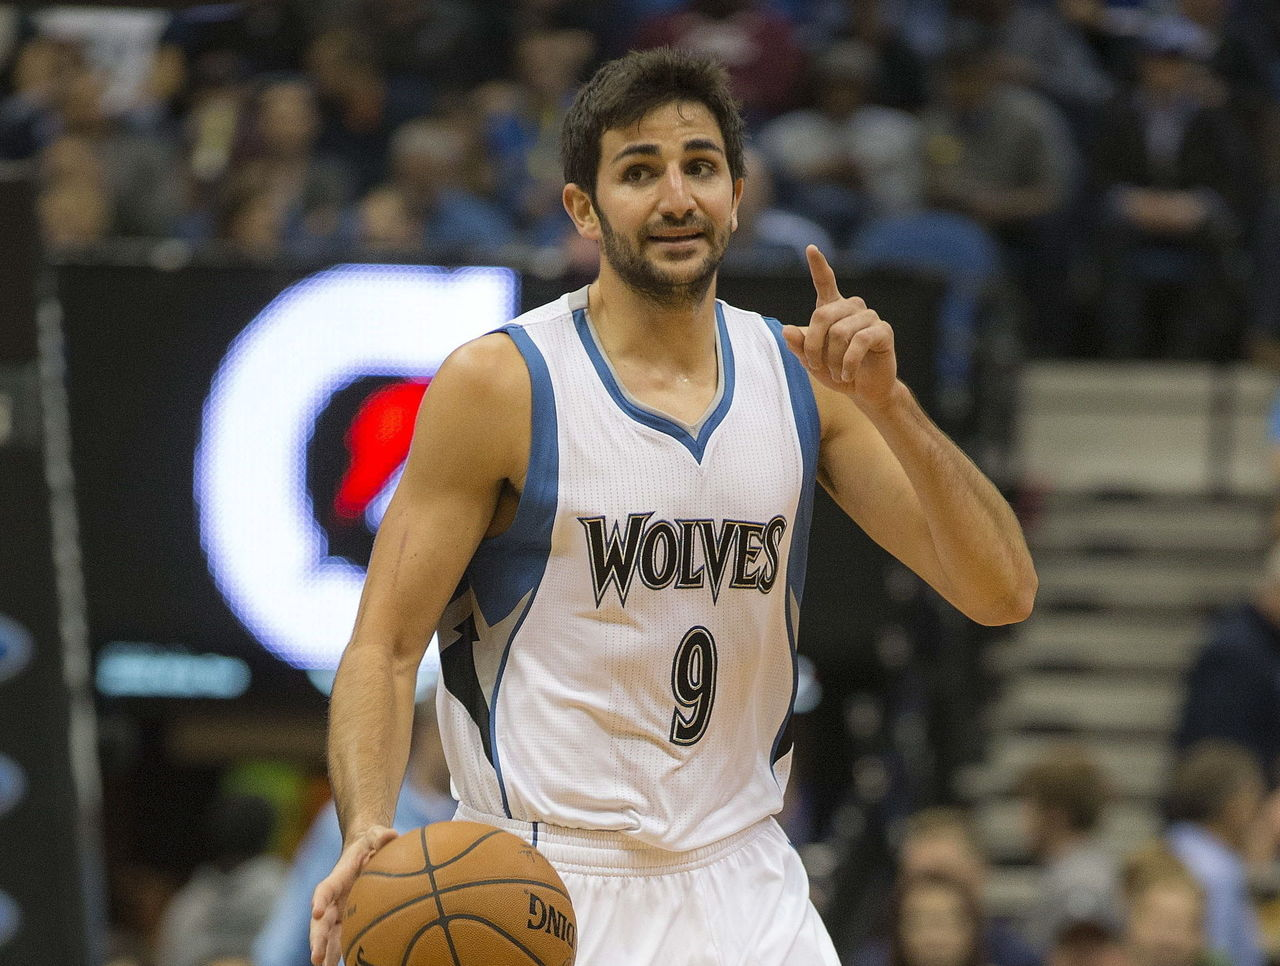 VIDEO: Rubio defies laws of physics with bending pass | theScore com